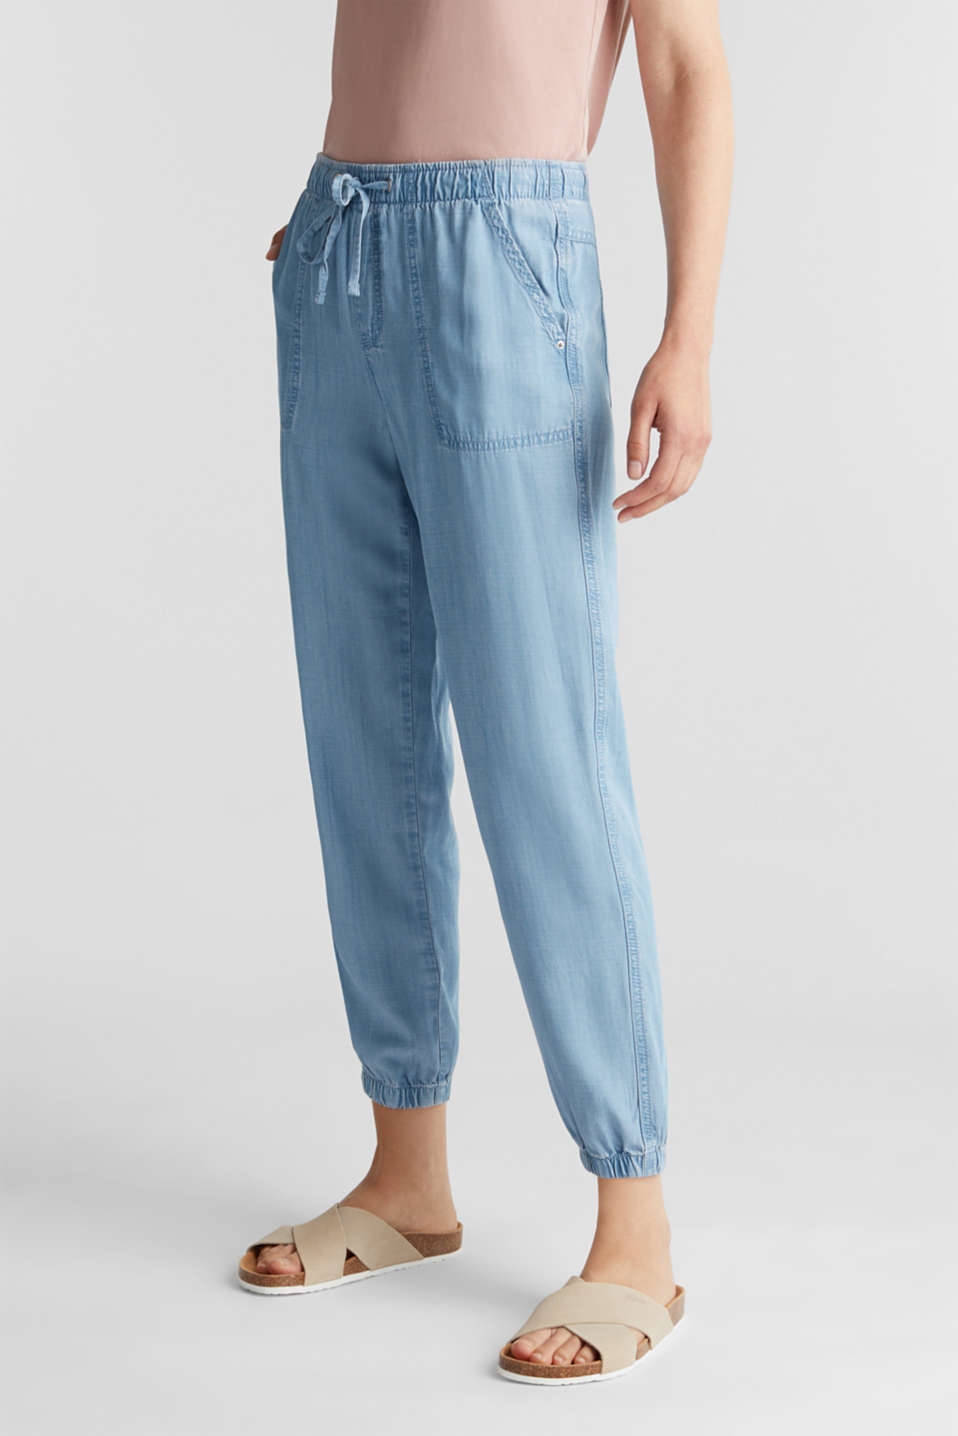 Esprit - Tracksuit bottoms in a denim look